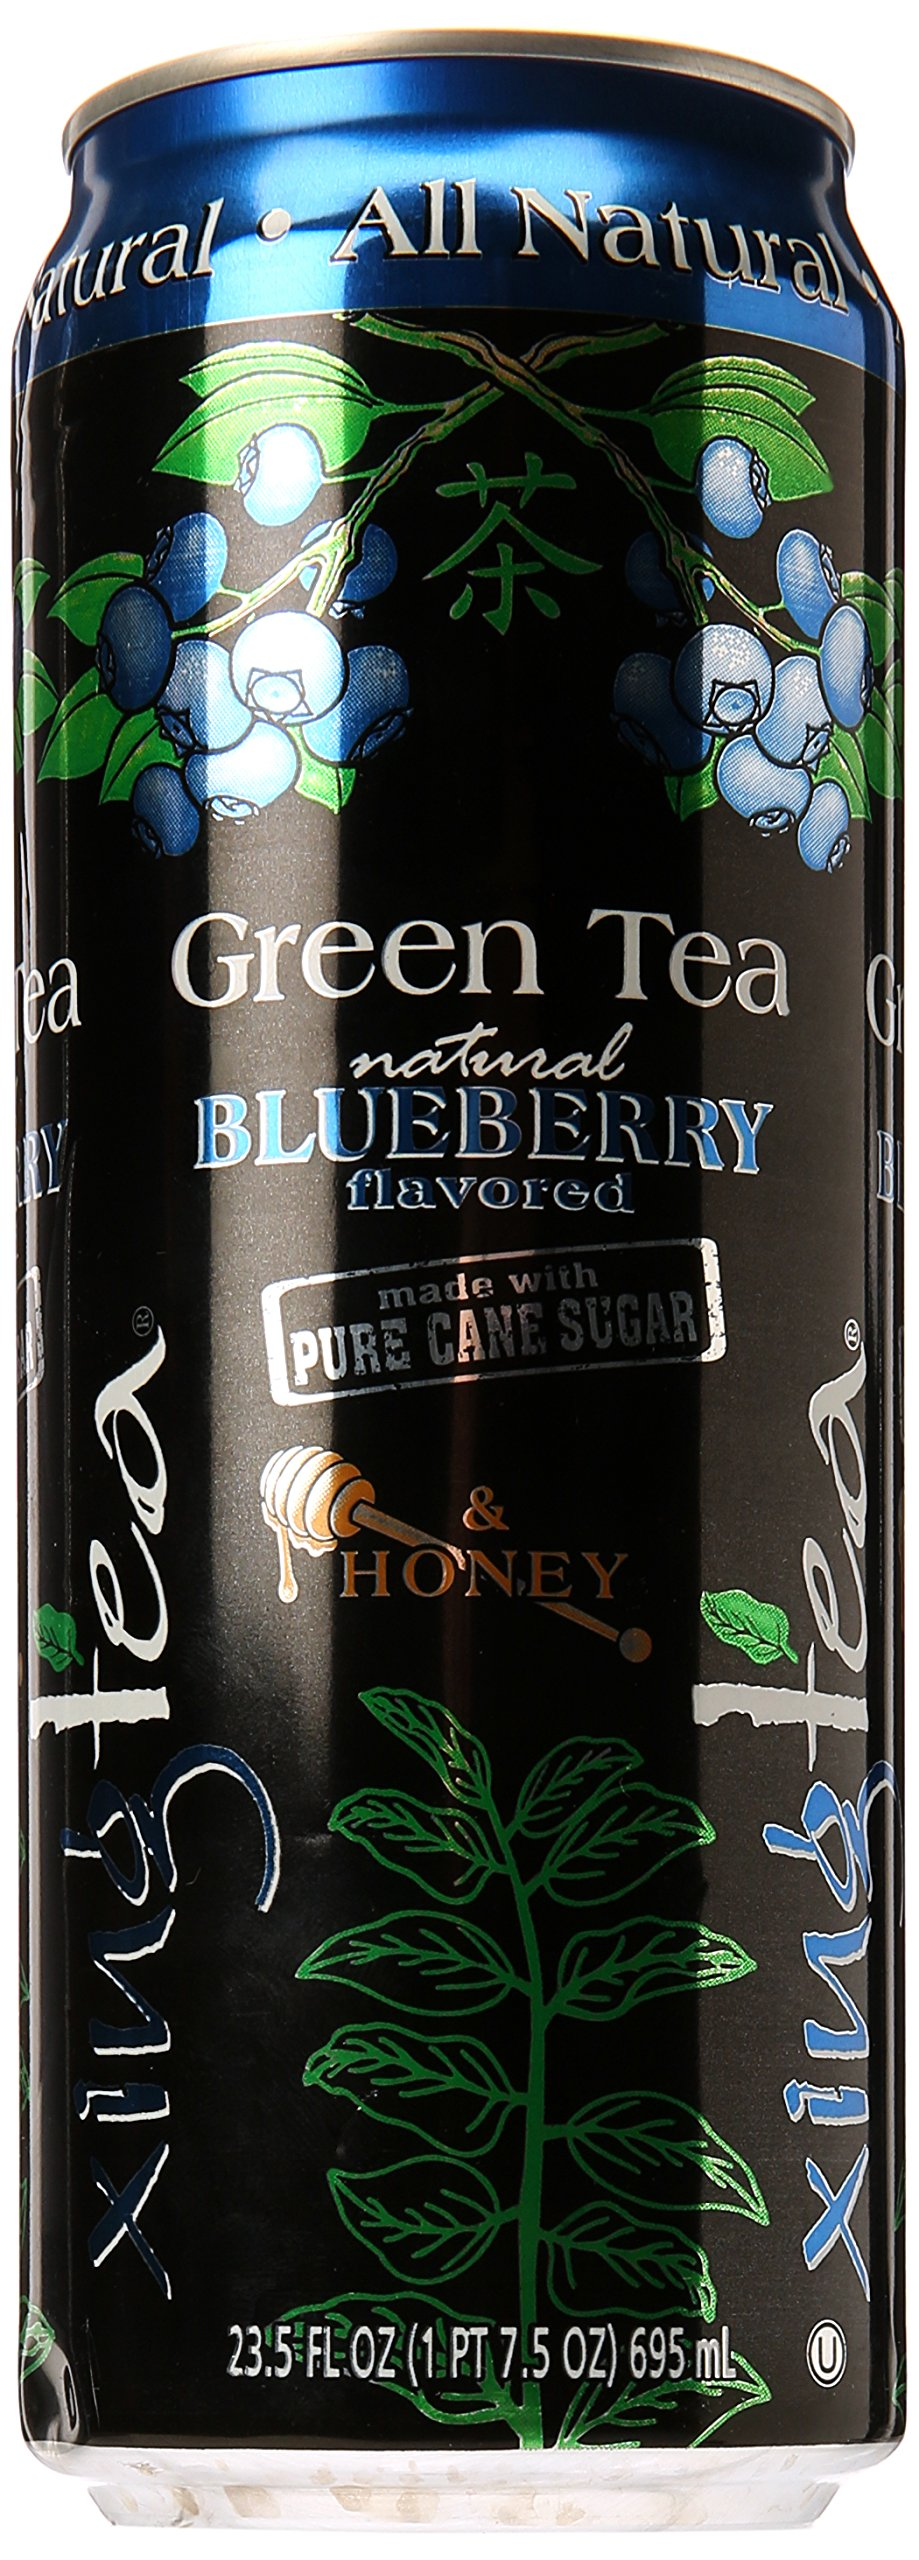 Xing Blueberry and Honey Green Tea in 23.5 Ounce Can, Case of 12